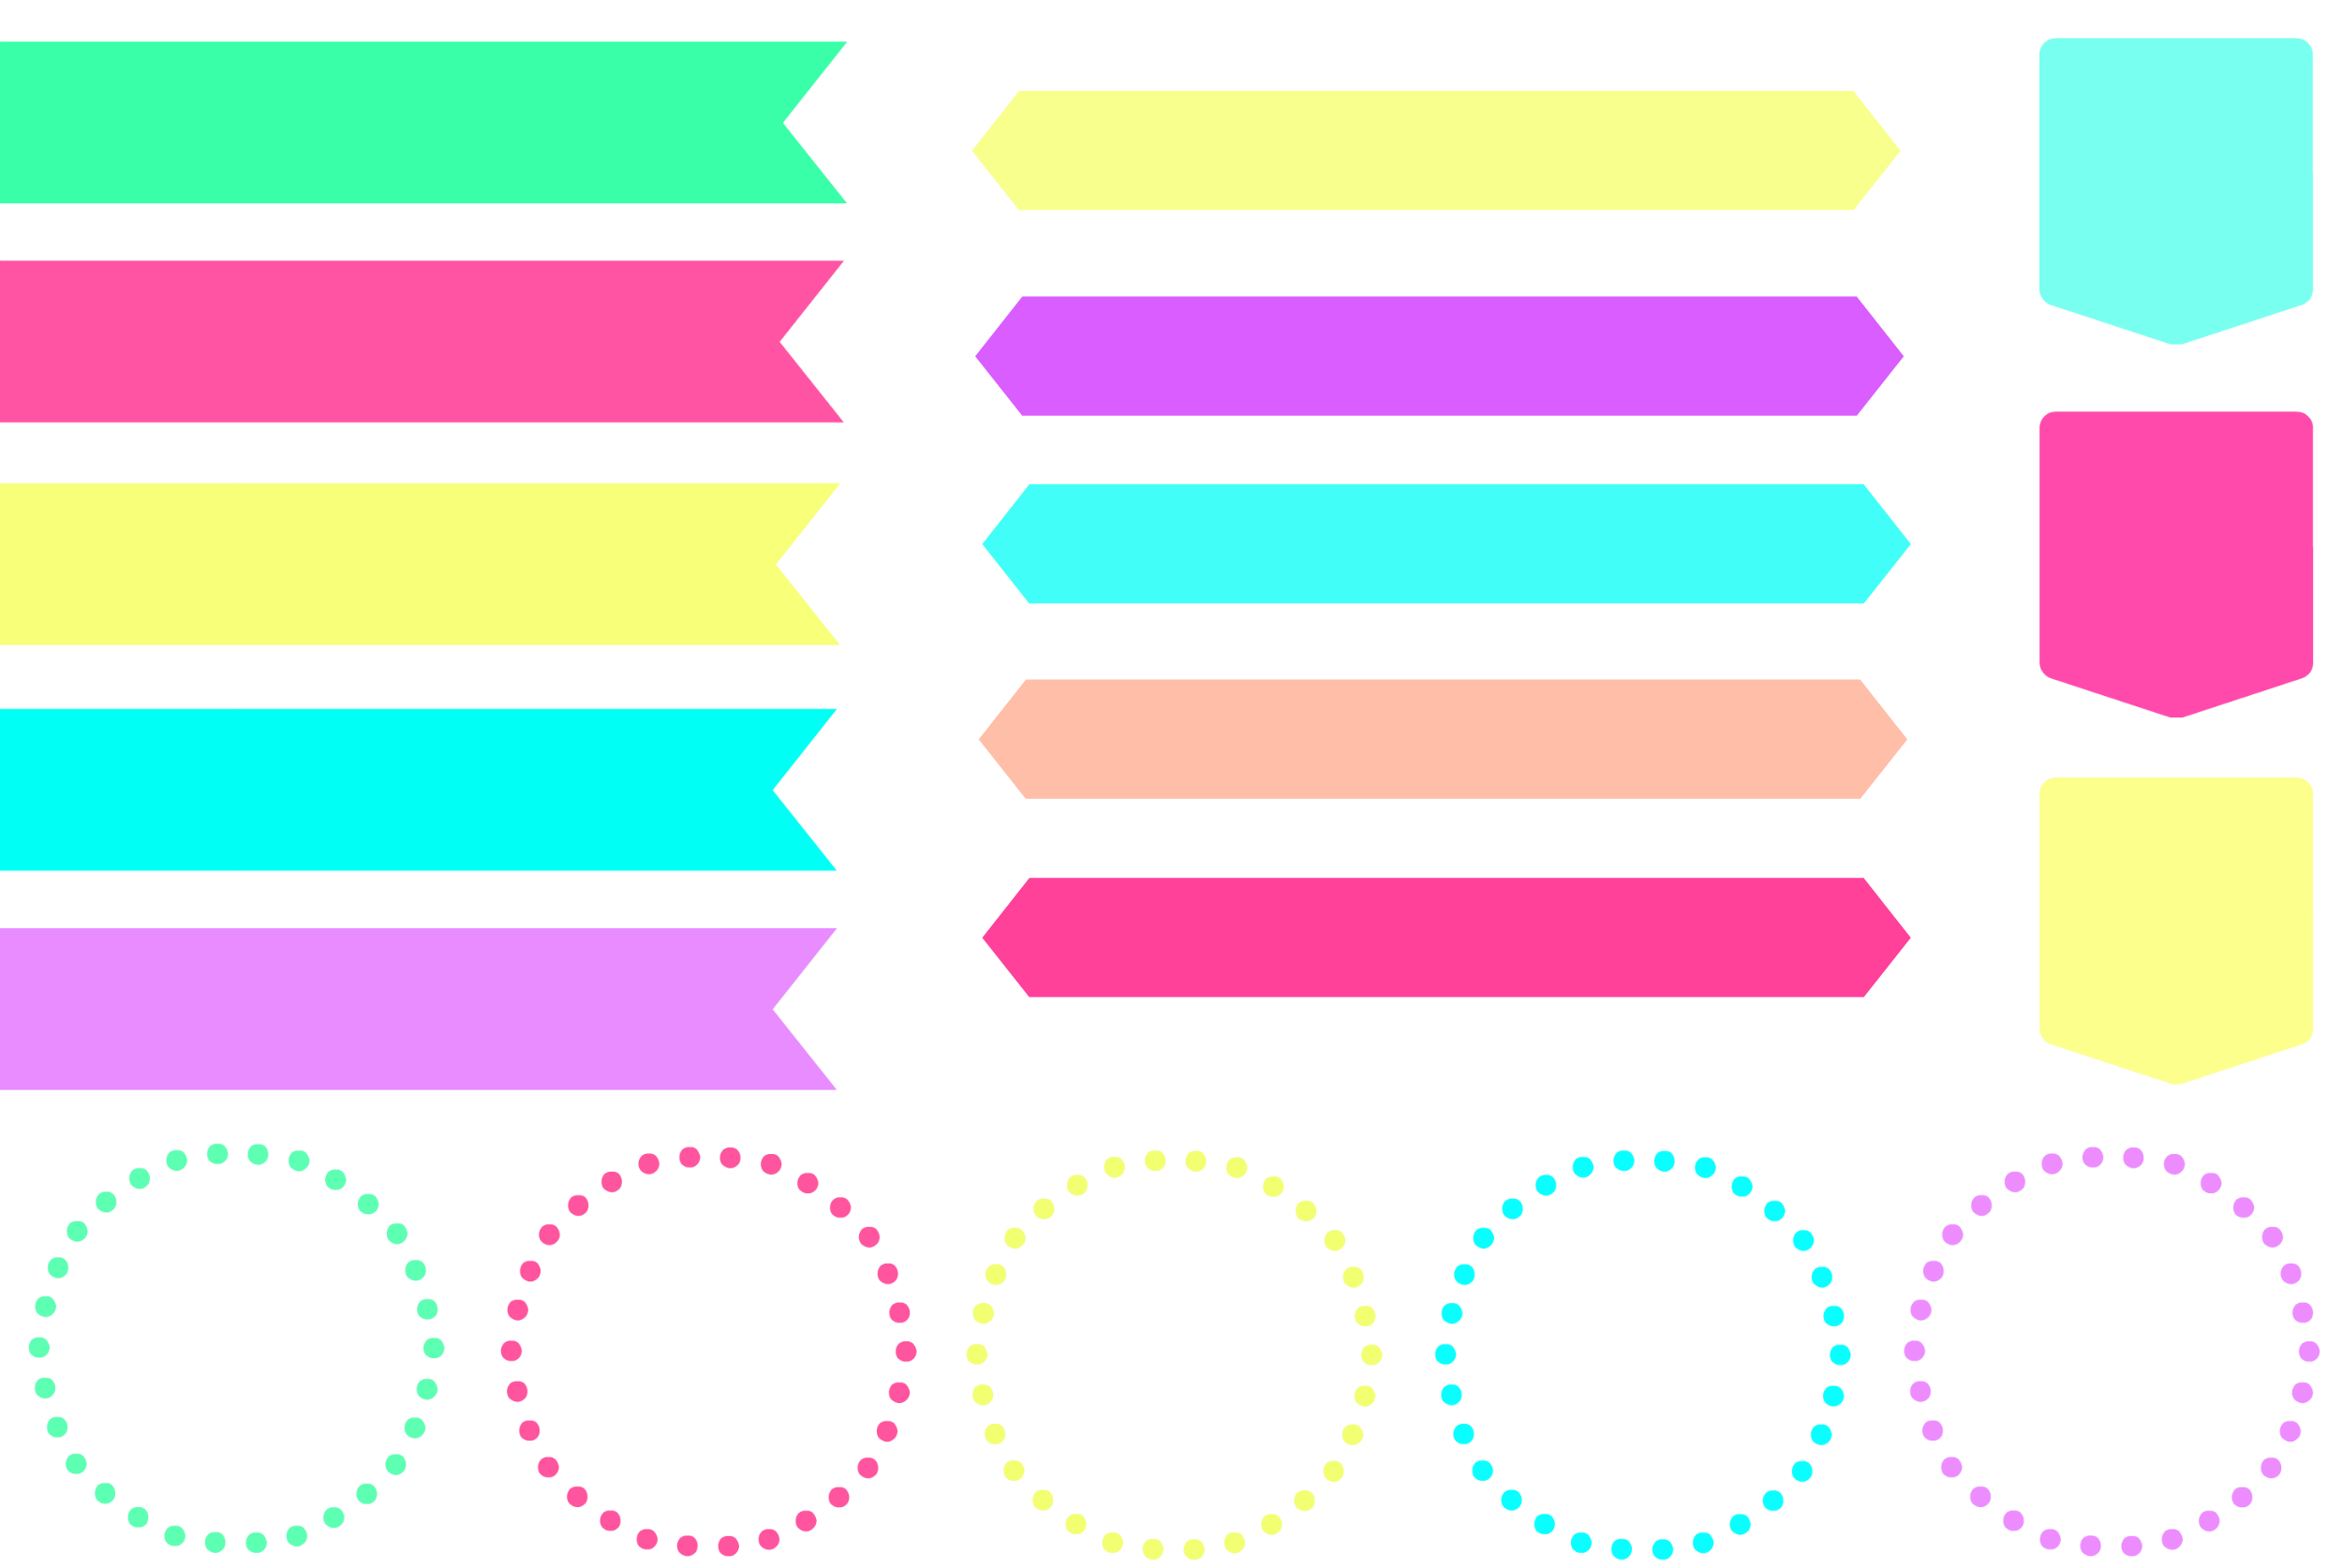 Banners clipart cliparts of banners free download wmf emf.